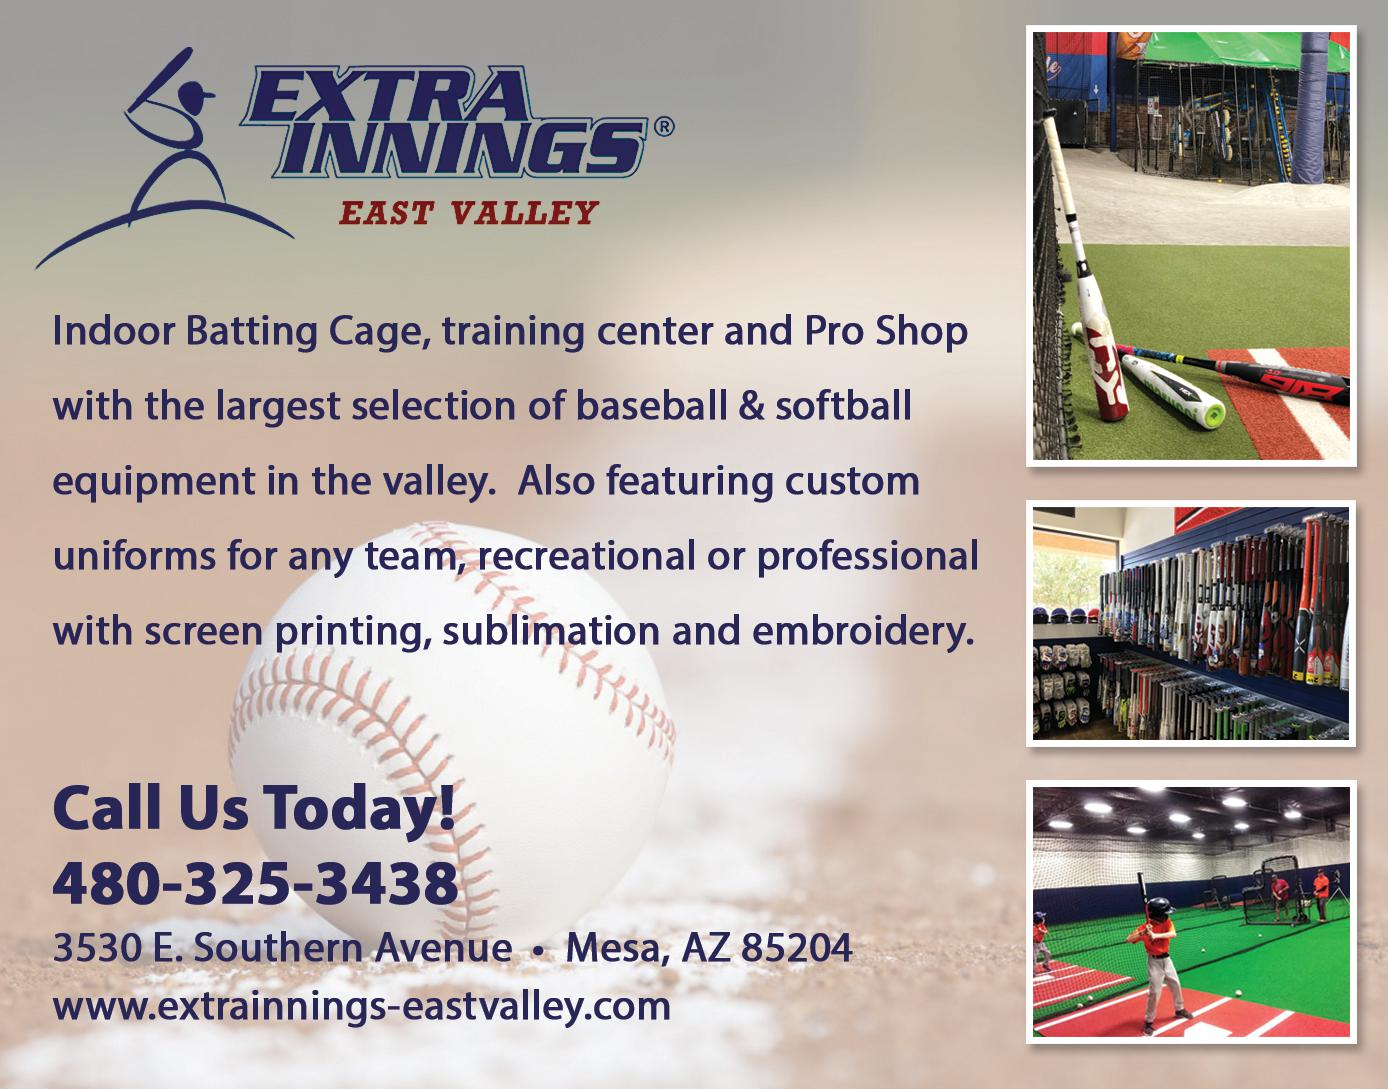 Extra Innings-East Valley